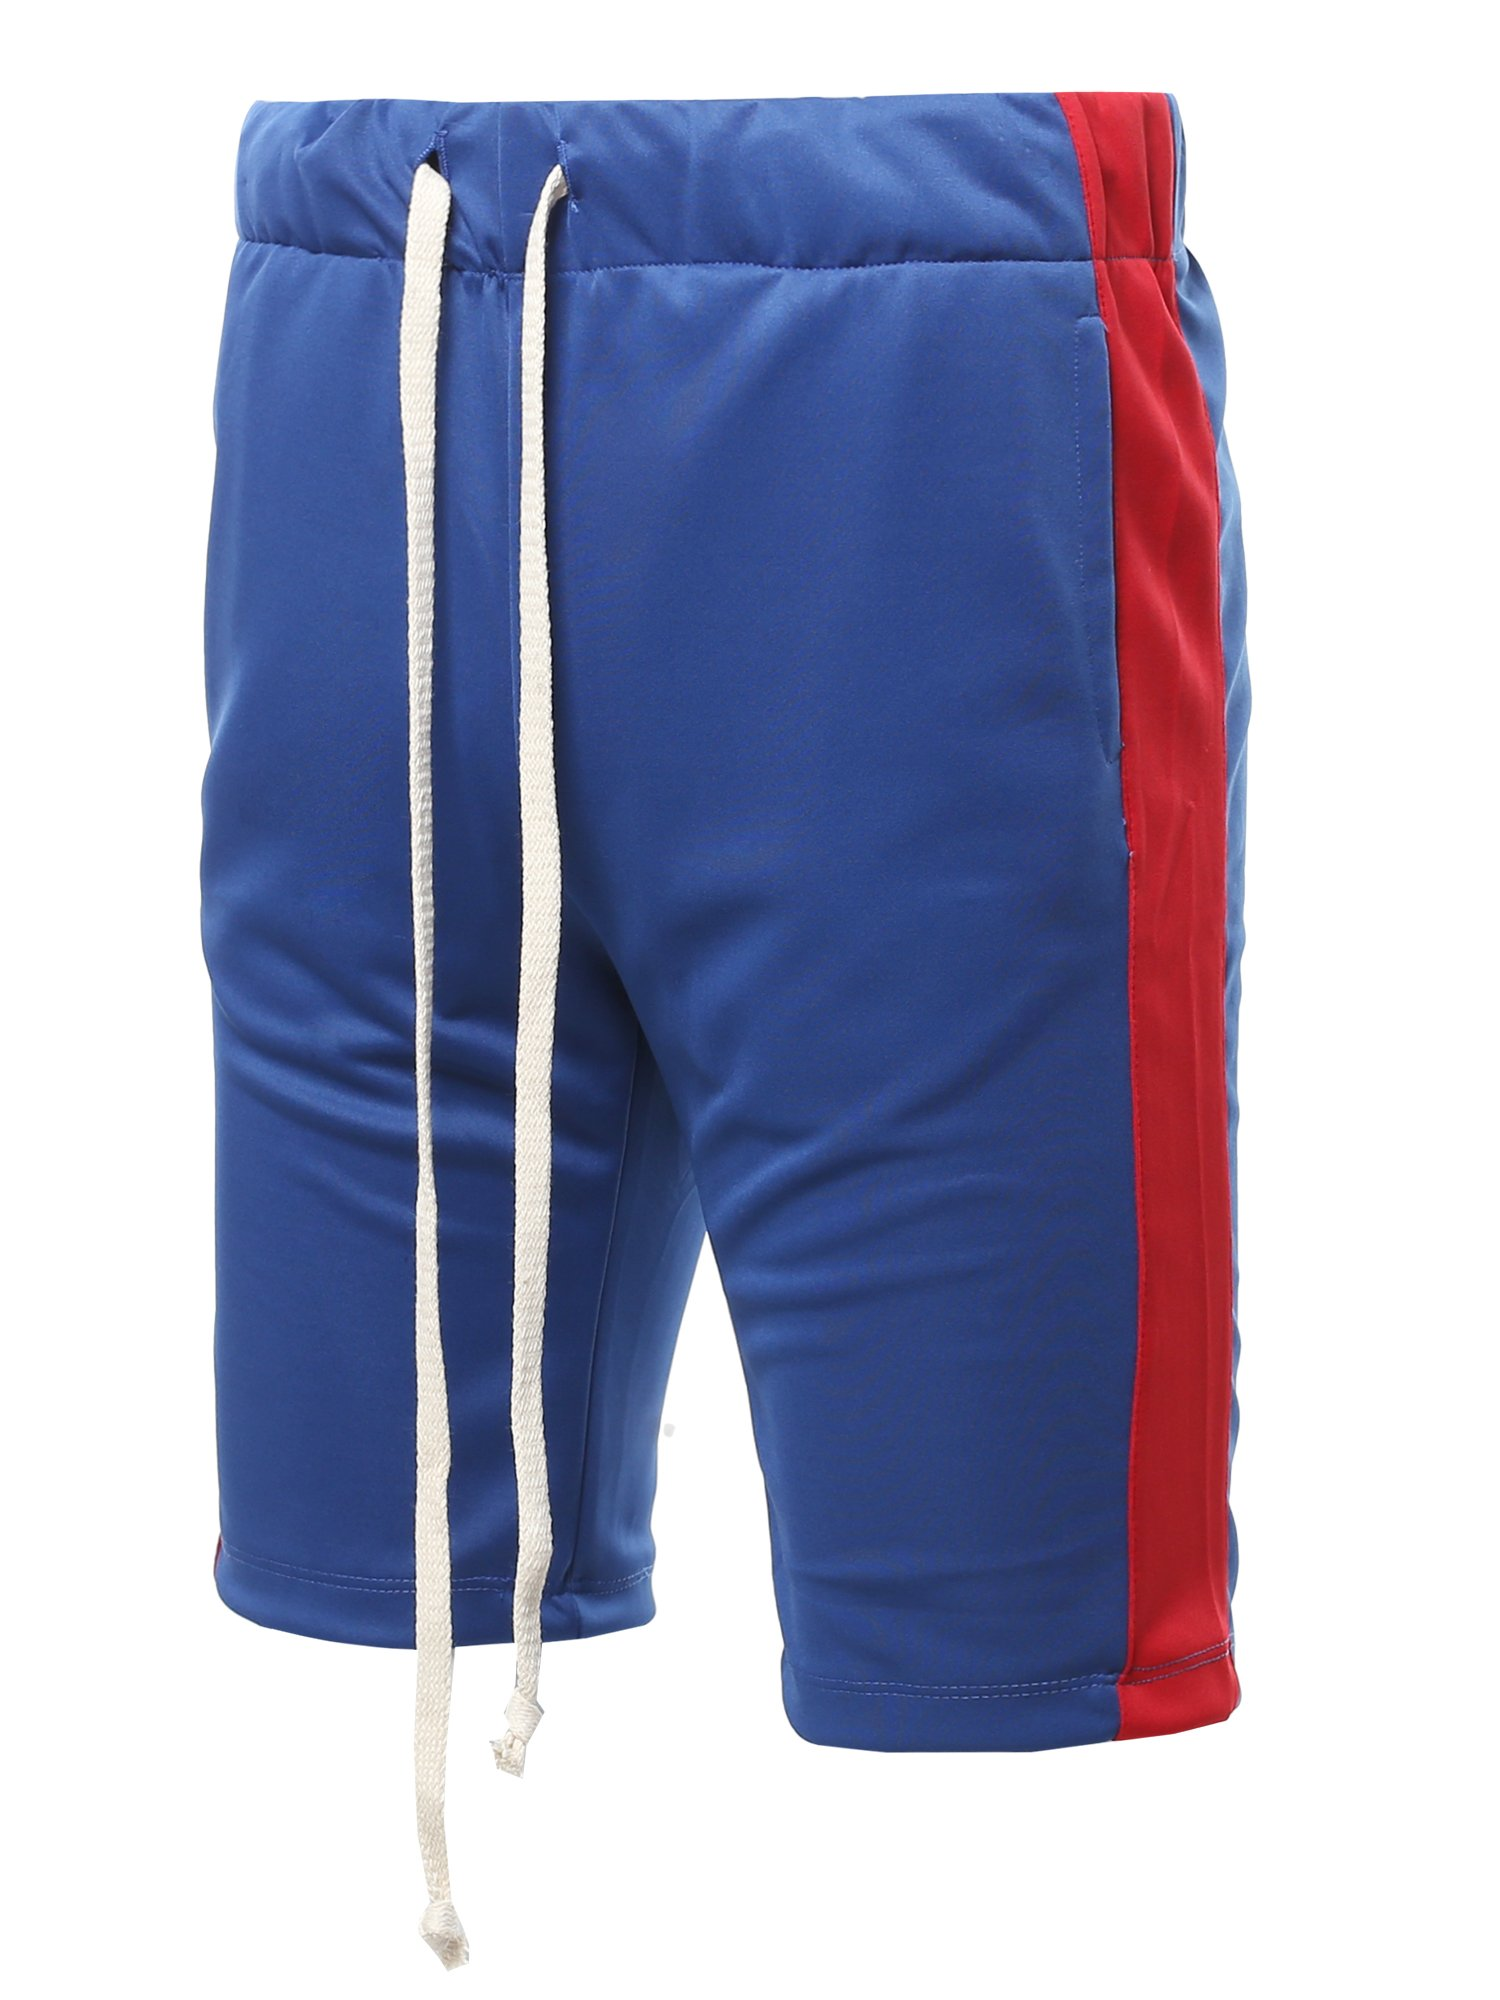 Style by William Casual Side Panel Drawstring Side